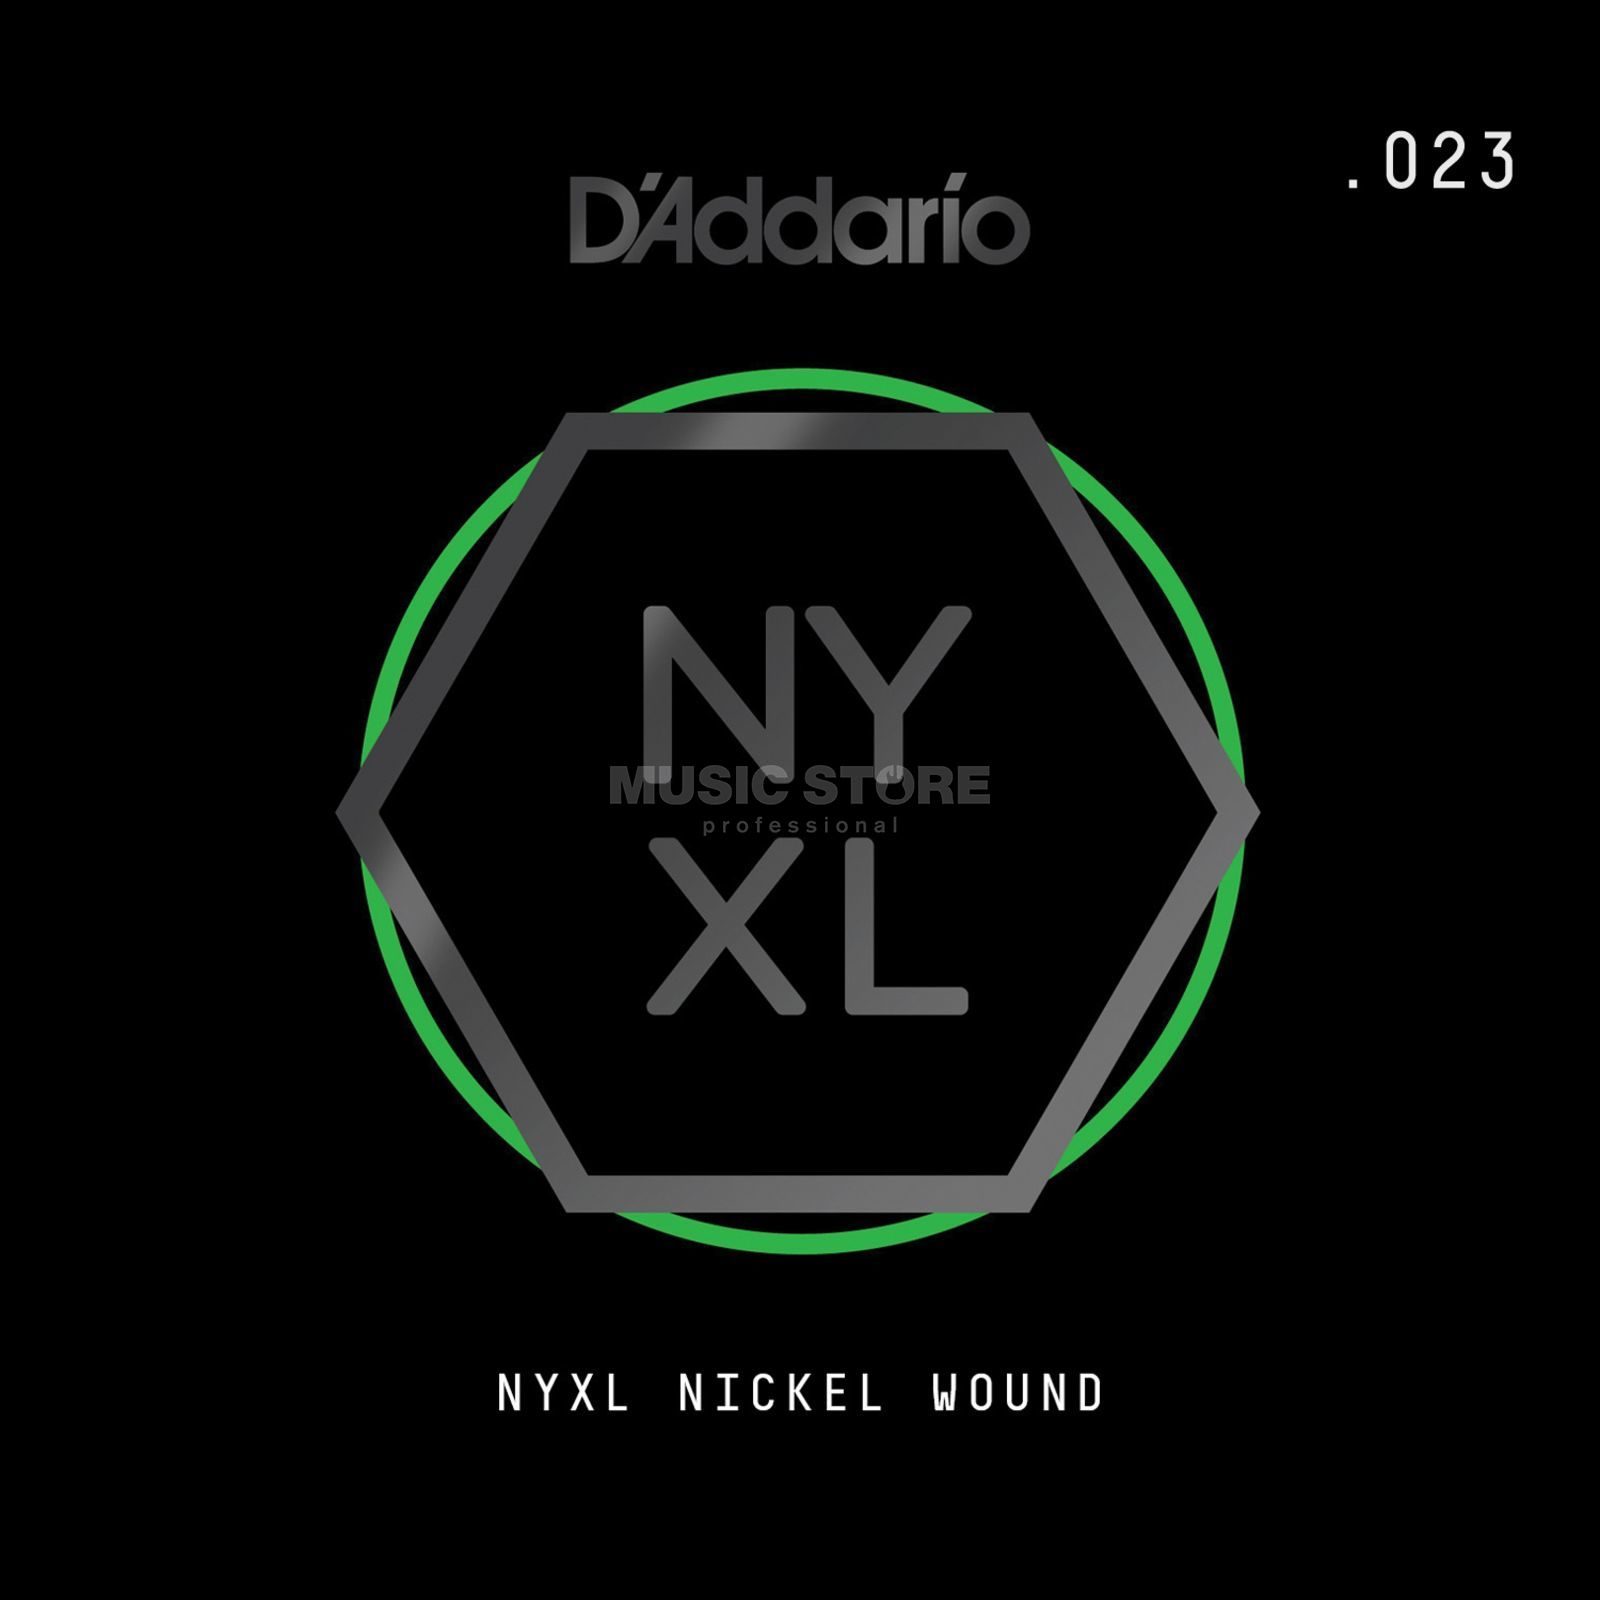 D'Addario NYNW023 Single String Nickel Wound Zdjęcie produktu